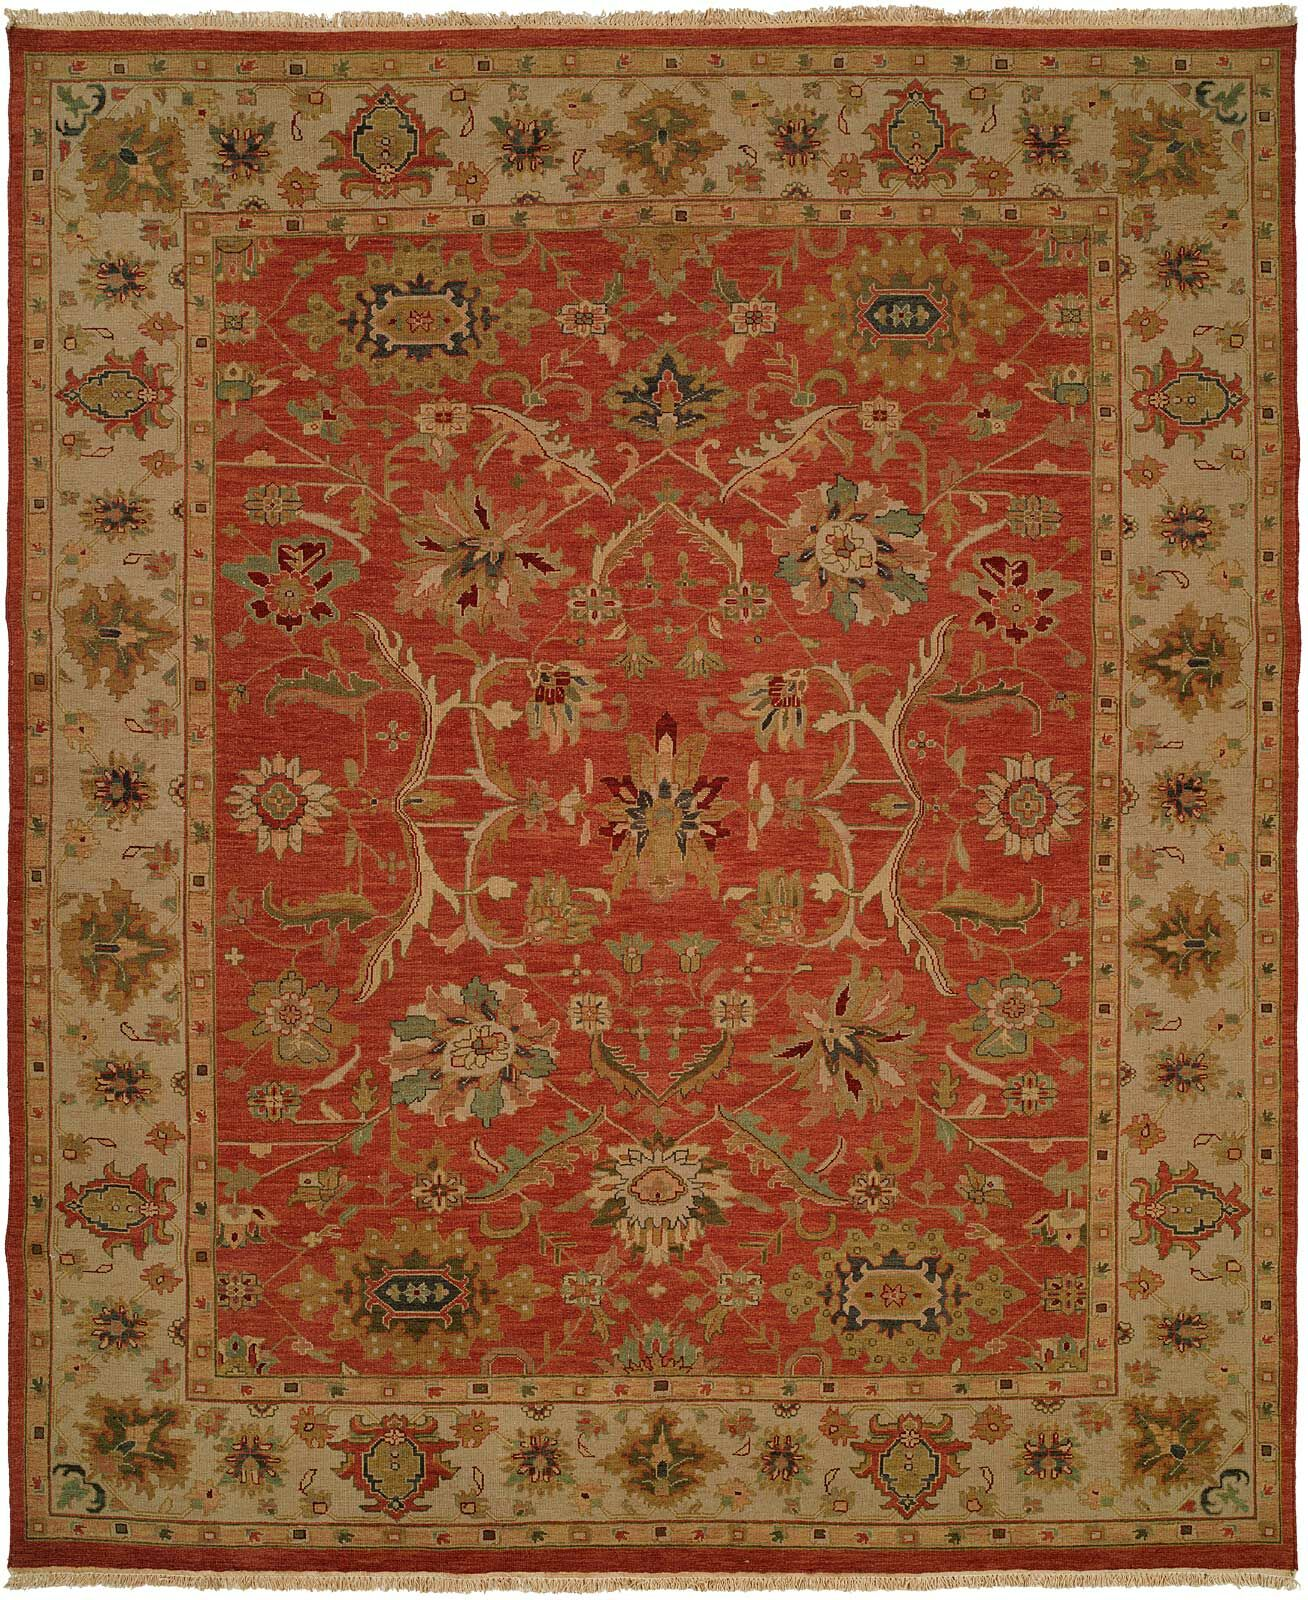 Arora Hand-Woven Red/Beige Area Rug Rug Size: Rectangle 6' x 9'